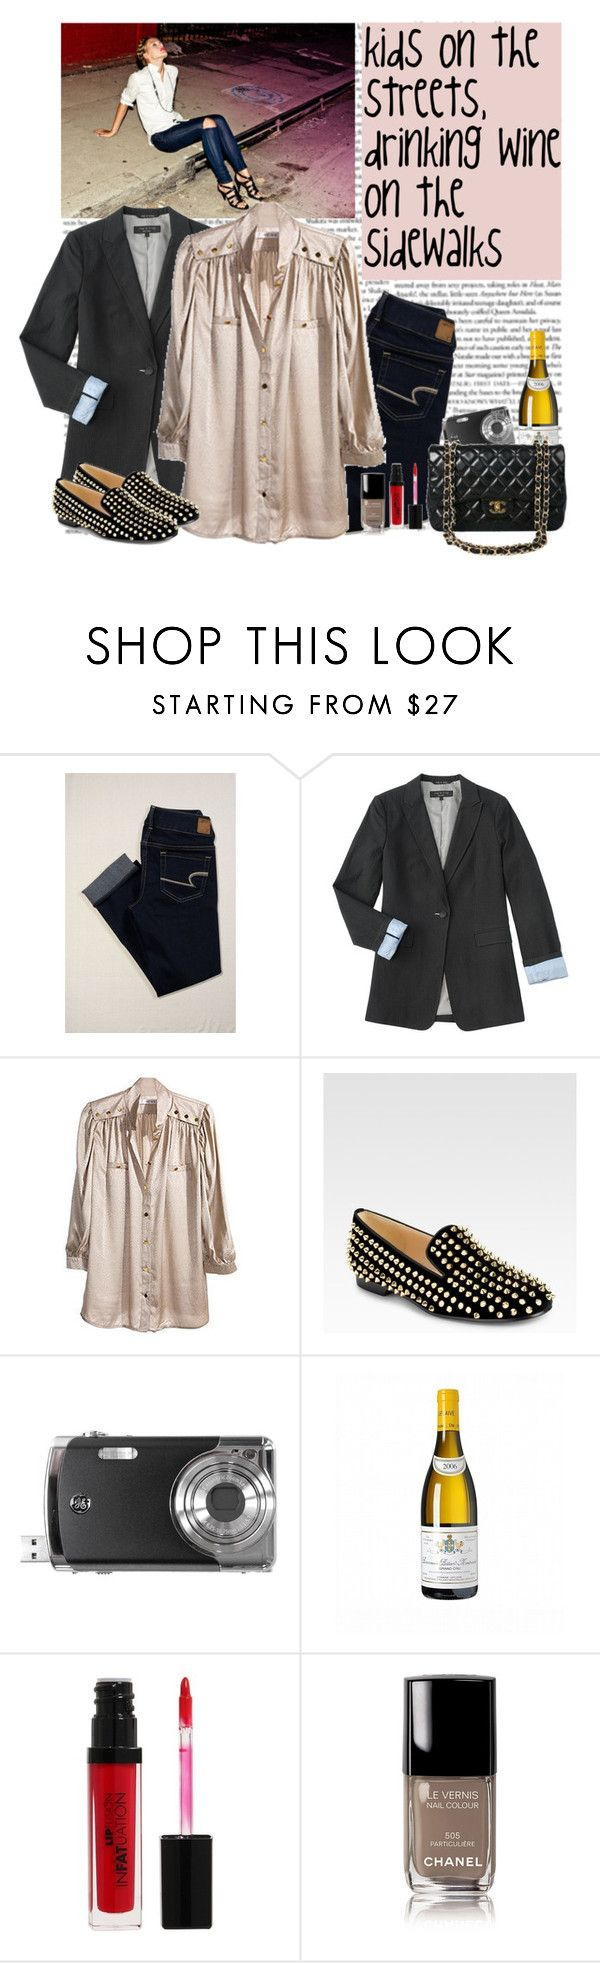 """""""Untitled"""" by helena99 ❤ liked on Polyvore featuring American Eagle Outfitters, rag & bone, Reiss, Christian Louboutin, Jason Wu, Chanel, FusionBeauty, skinny jeans, quilted handbags and loafers"""